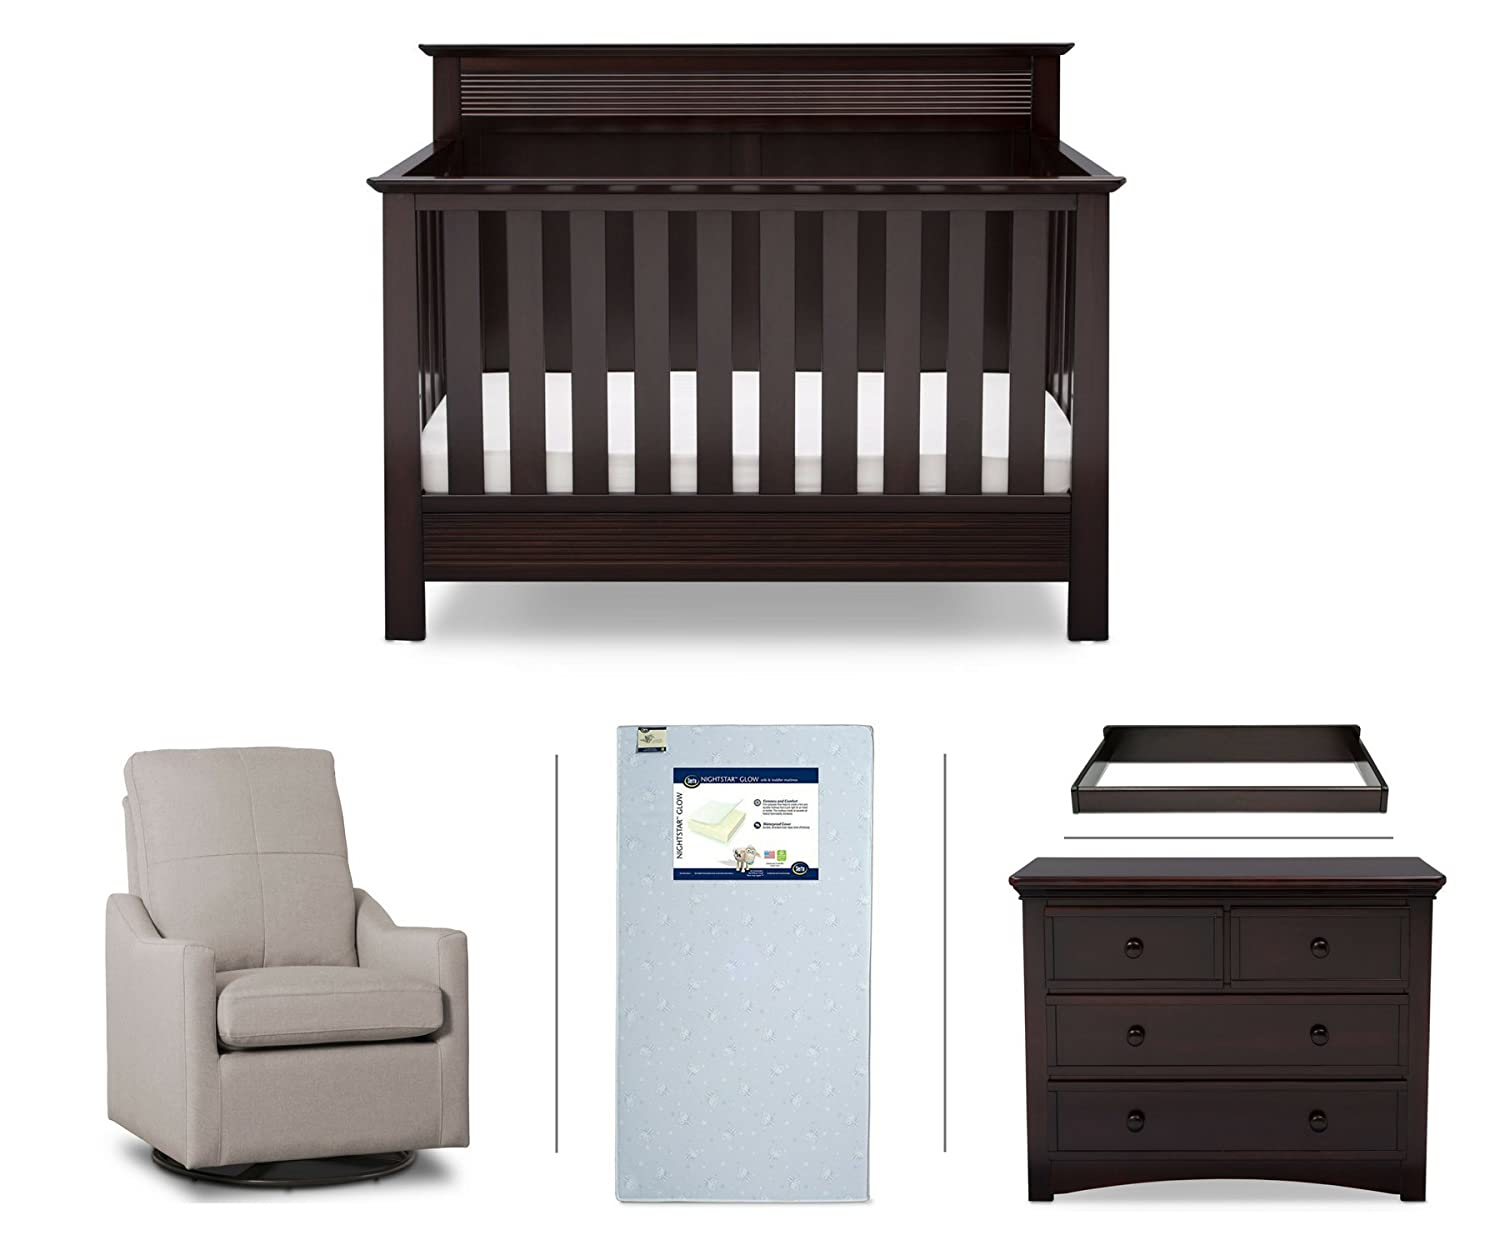 Serta Fall River 5 Piece Nursery Furniture Set (Serta Convertible Crib,  4 Drawer Dresser, Changing Top, Serta Crib Mattress, Glider), Dark  Chocolate/Beige